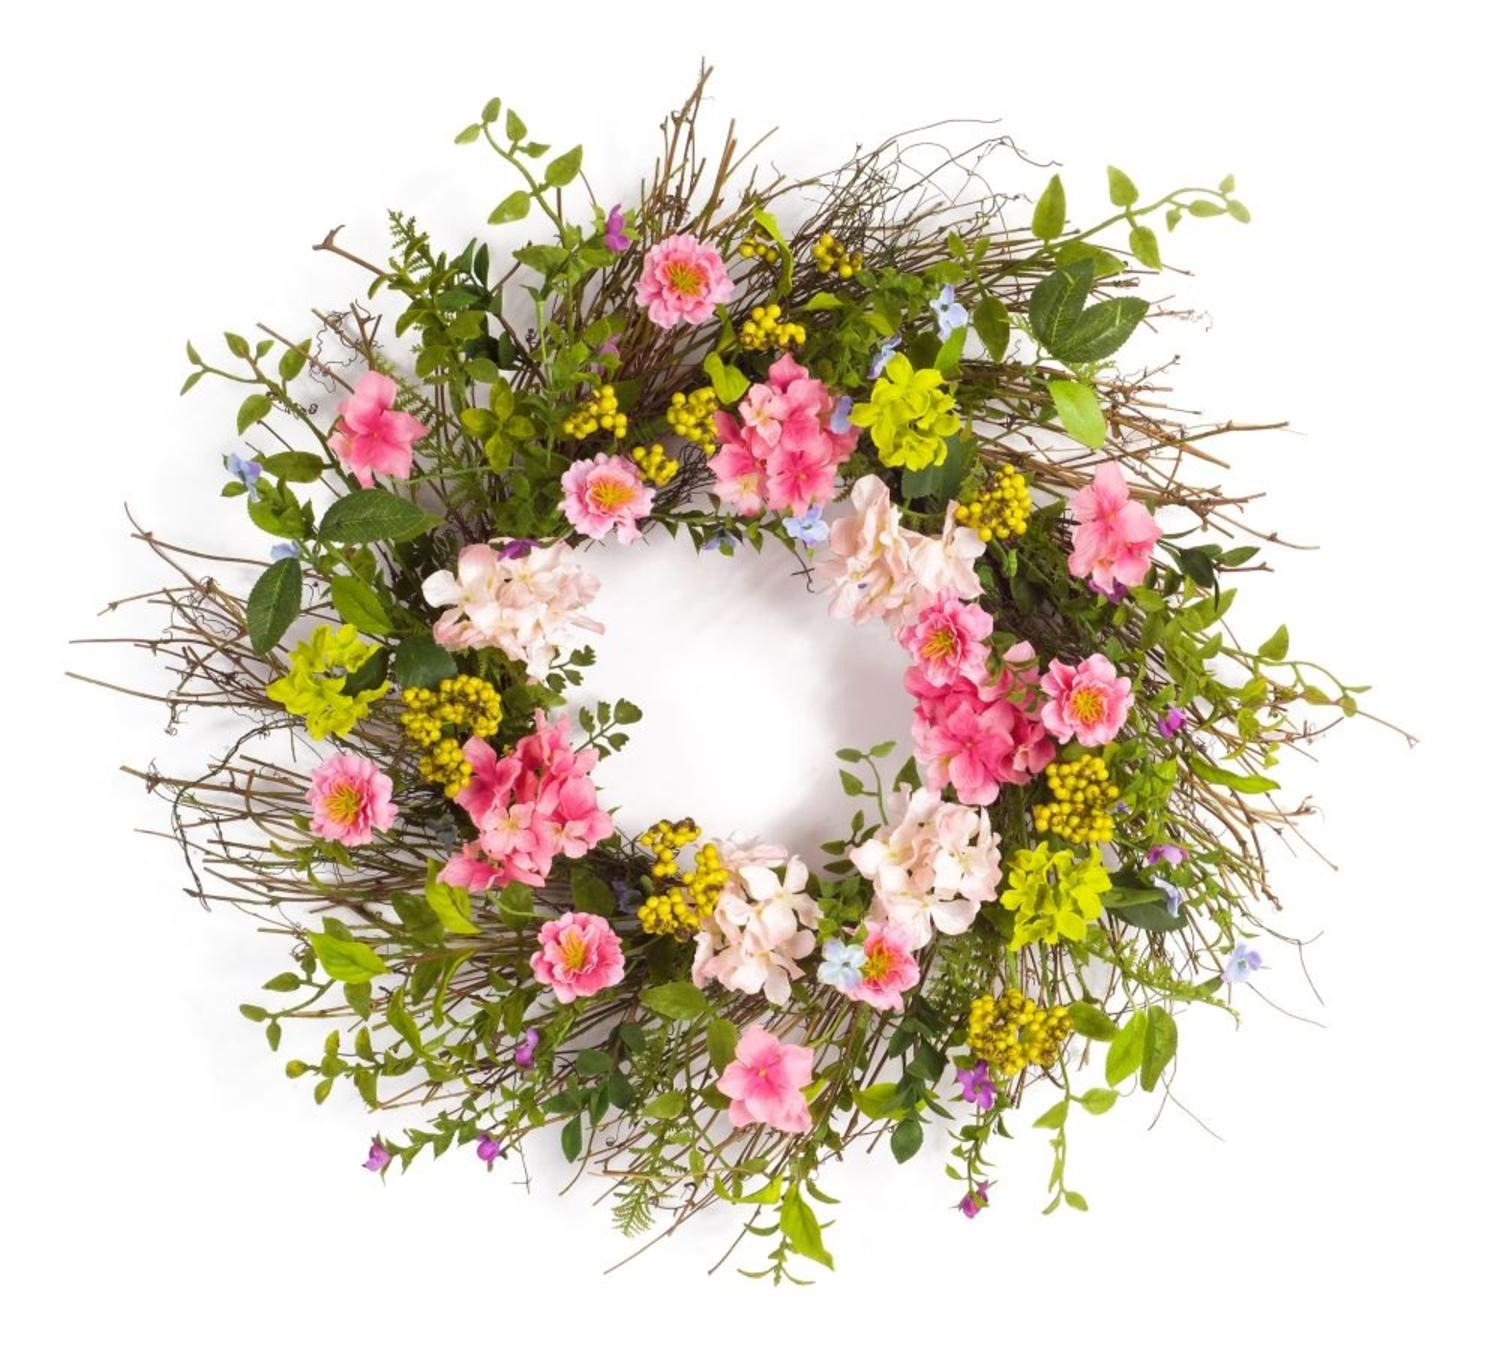 Green and Pink Hydrangea and Berry Artificial Floral Wreath - 26-Inch, Unlit